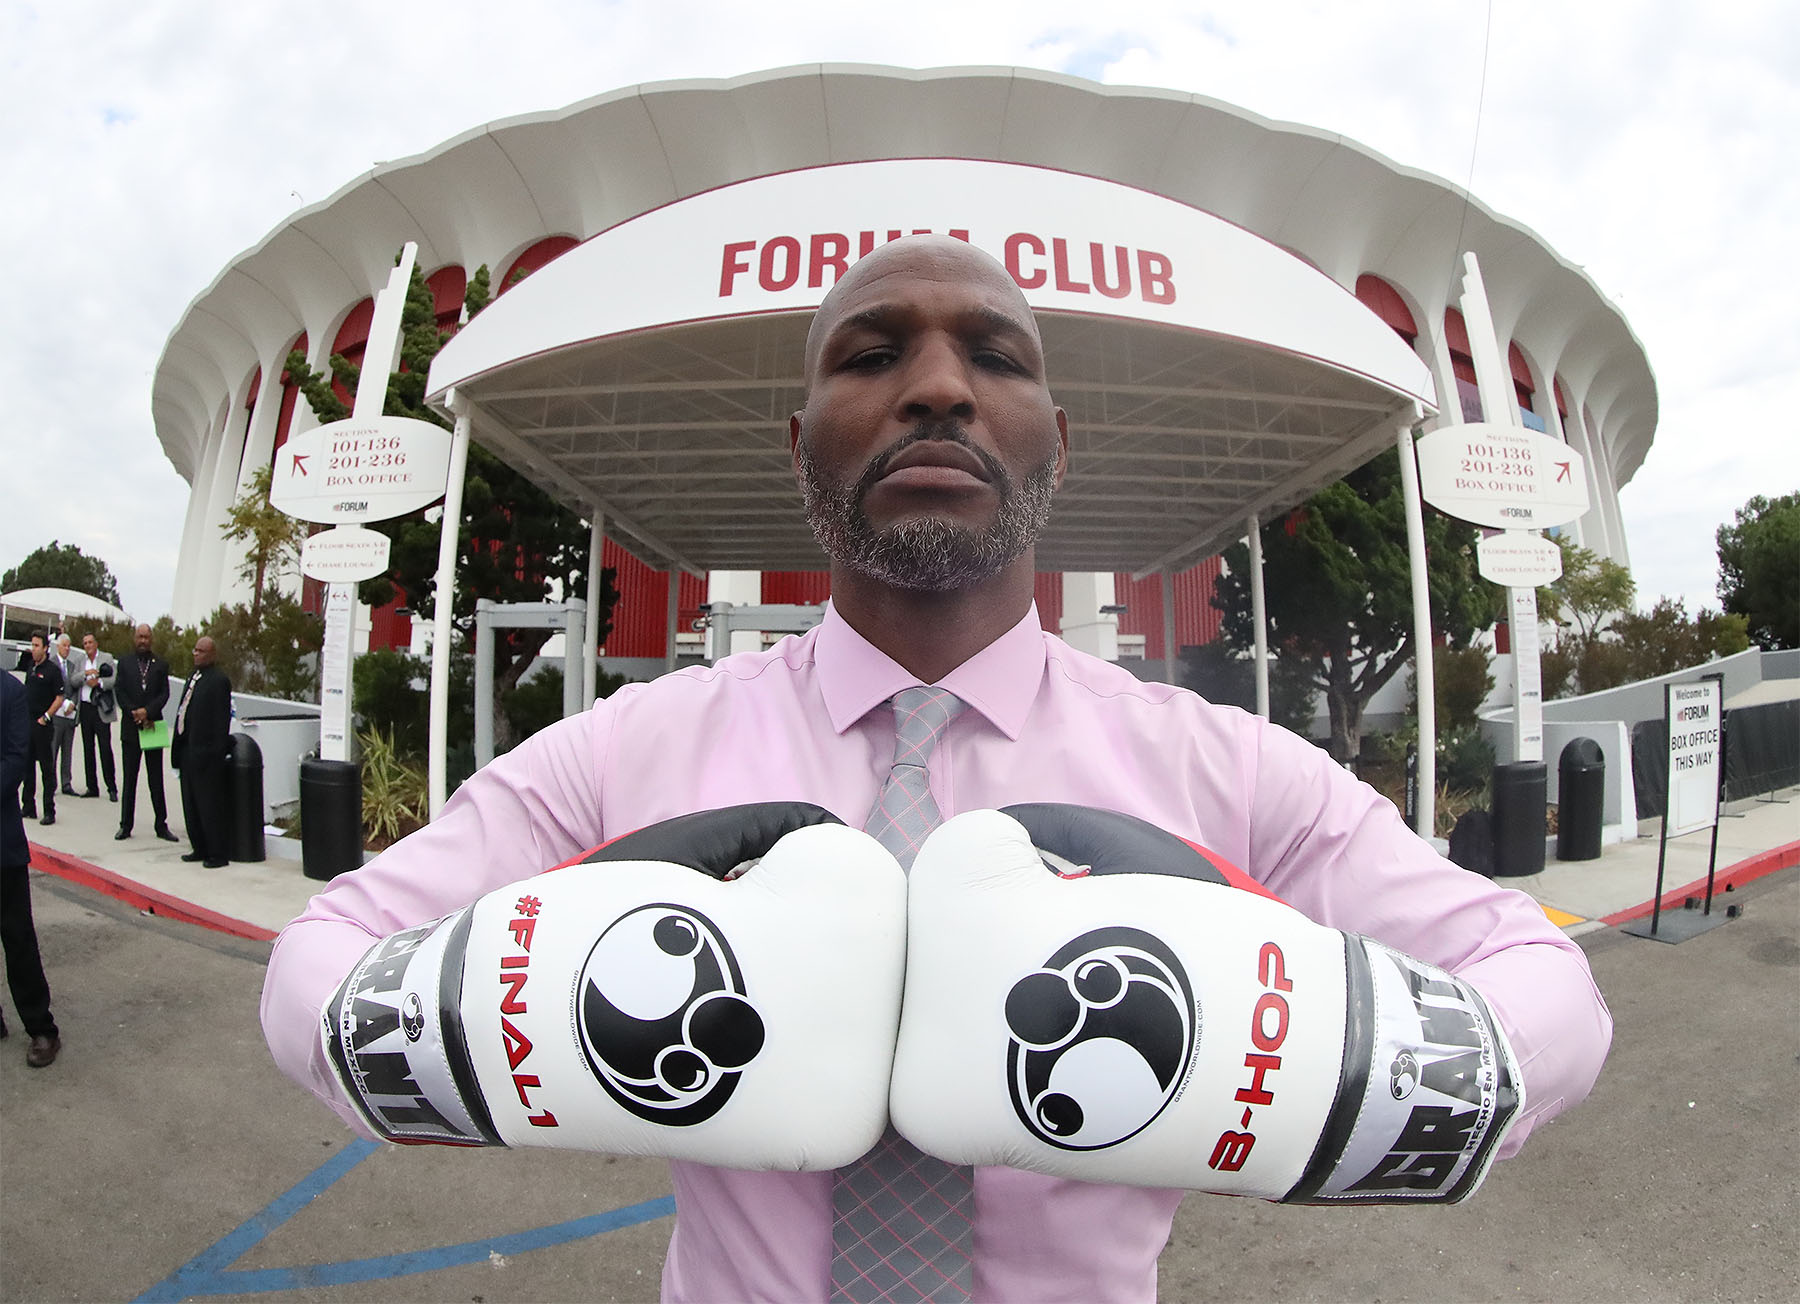 Bernard Hopkins poses in front of The Forum in Inglewood, California. Photo: Tom Hogan/Golden Boy Promotions